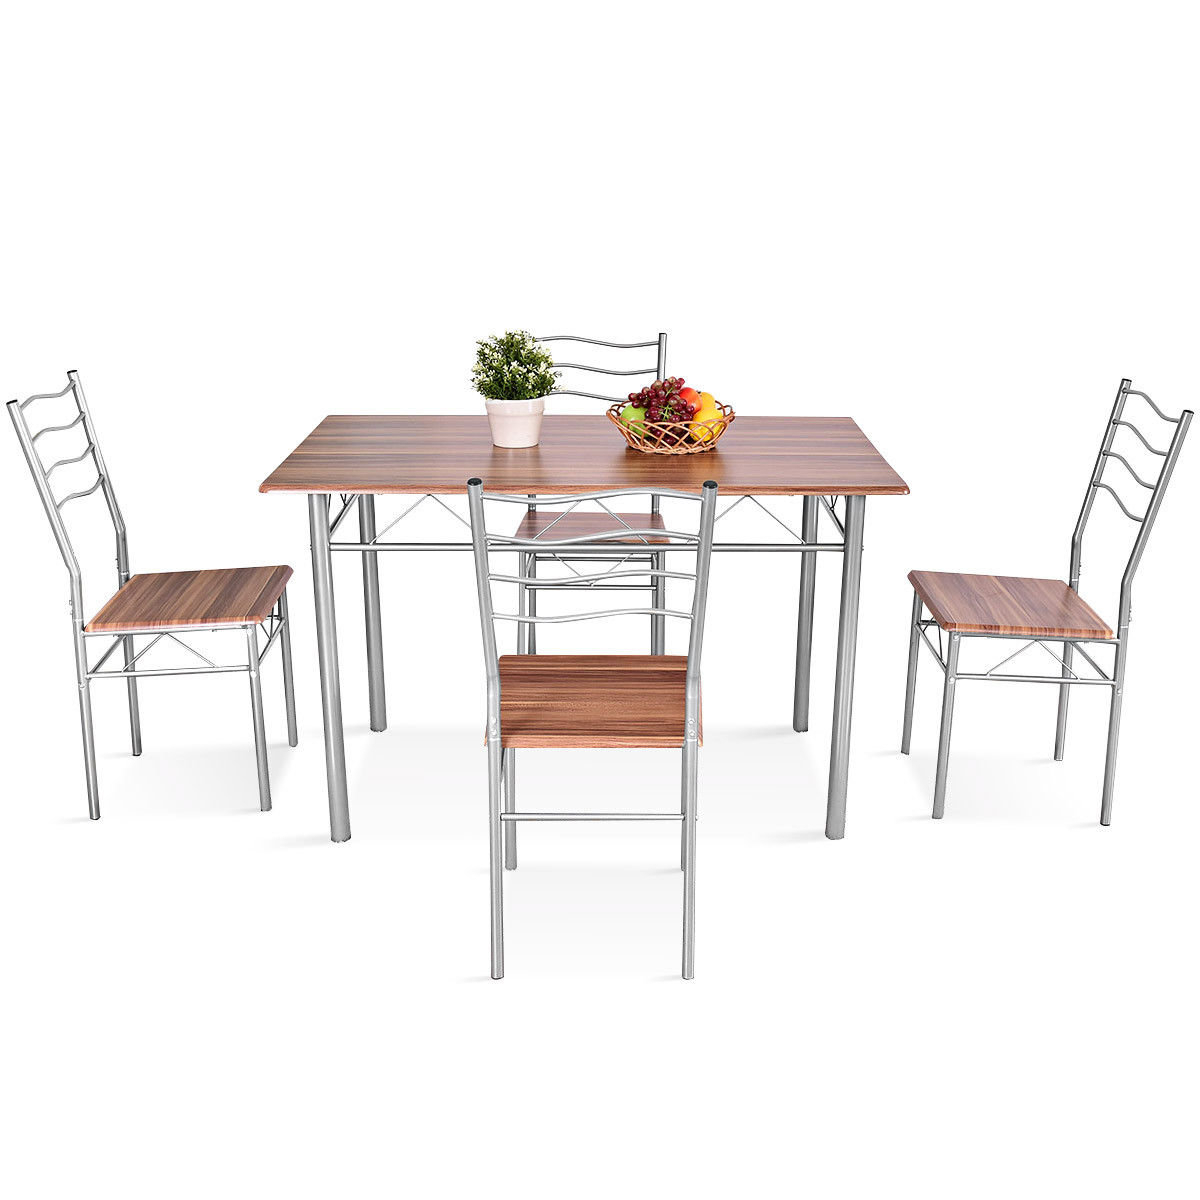 Details About Winston Porter Miskell 5 Piece Dining Set Pertaining To Most Recently Released Miskell 3 Piece Dining Sets (Photo 12 of 20)